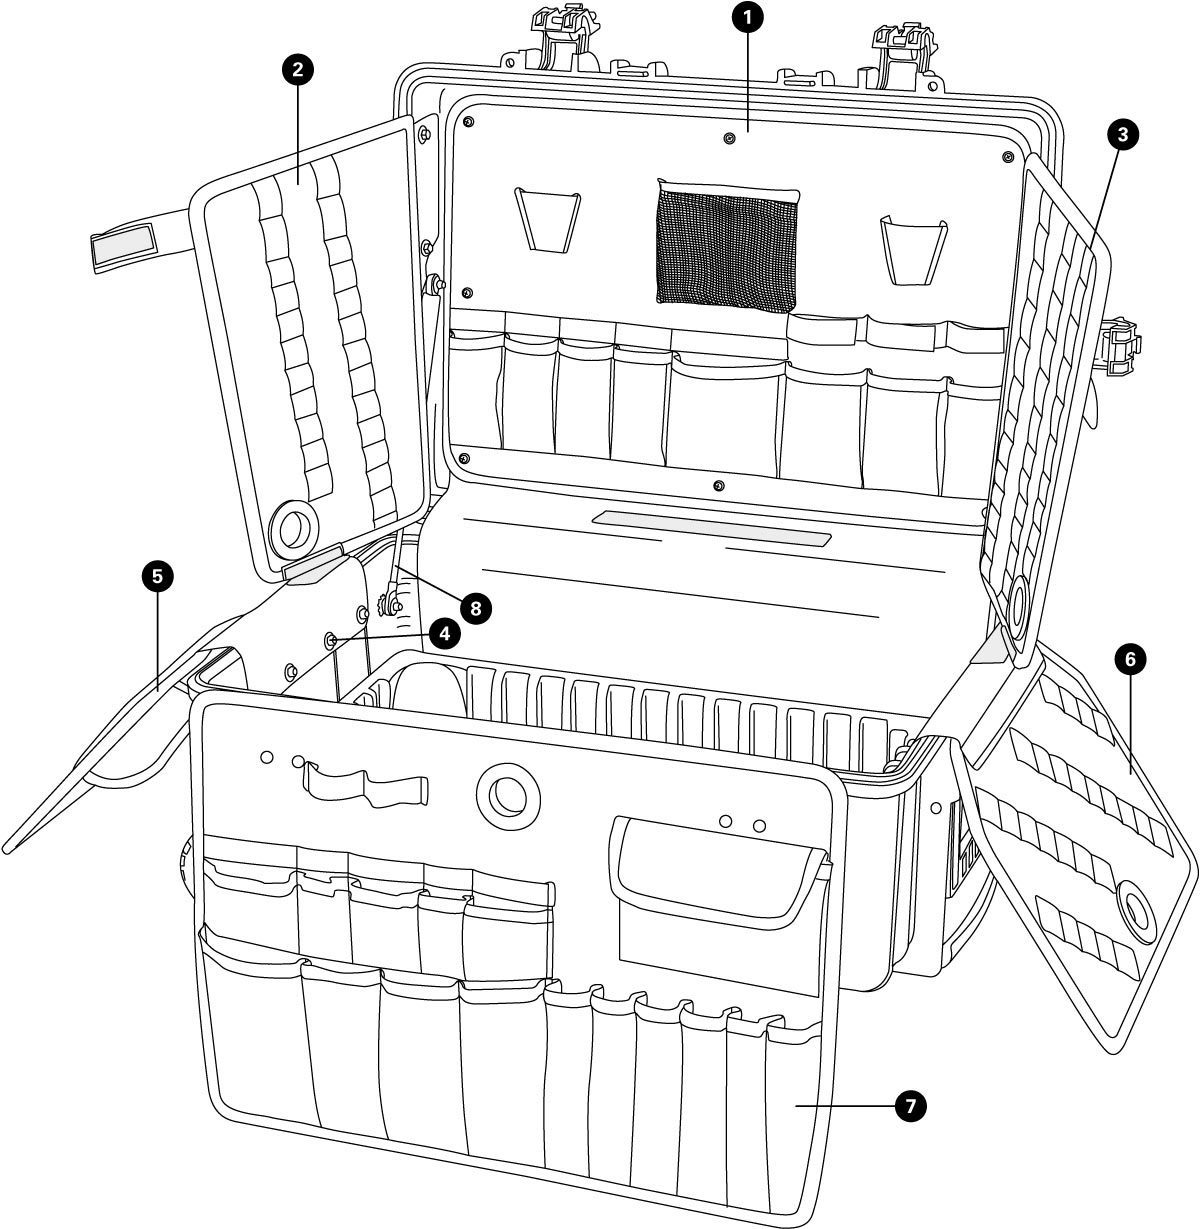 Parts diagram for BX-3 Rolling Big Blue Box, click to enlarge